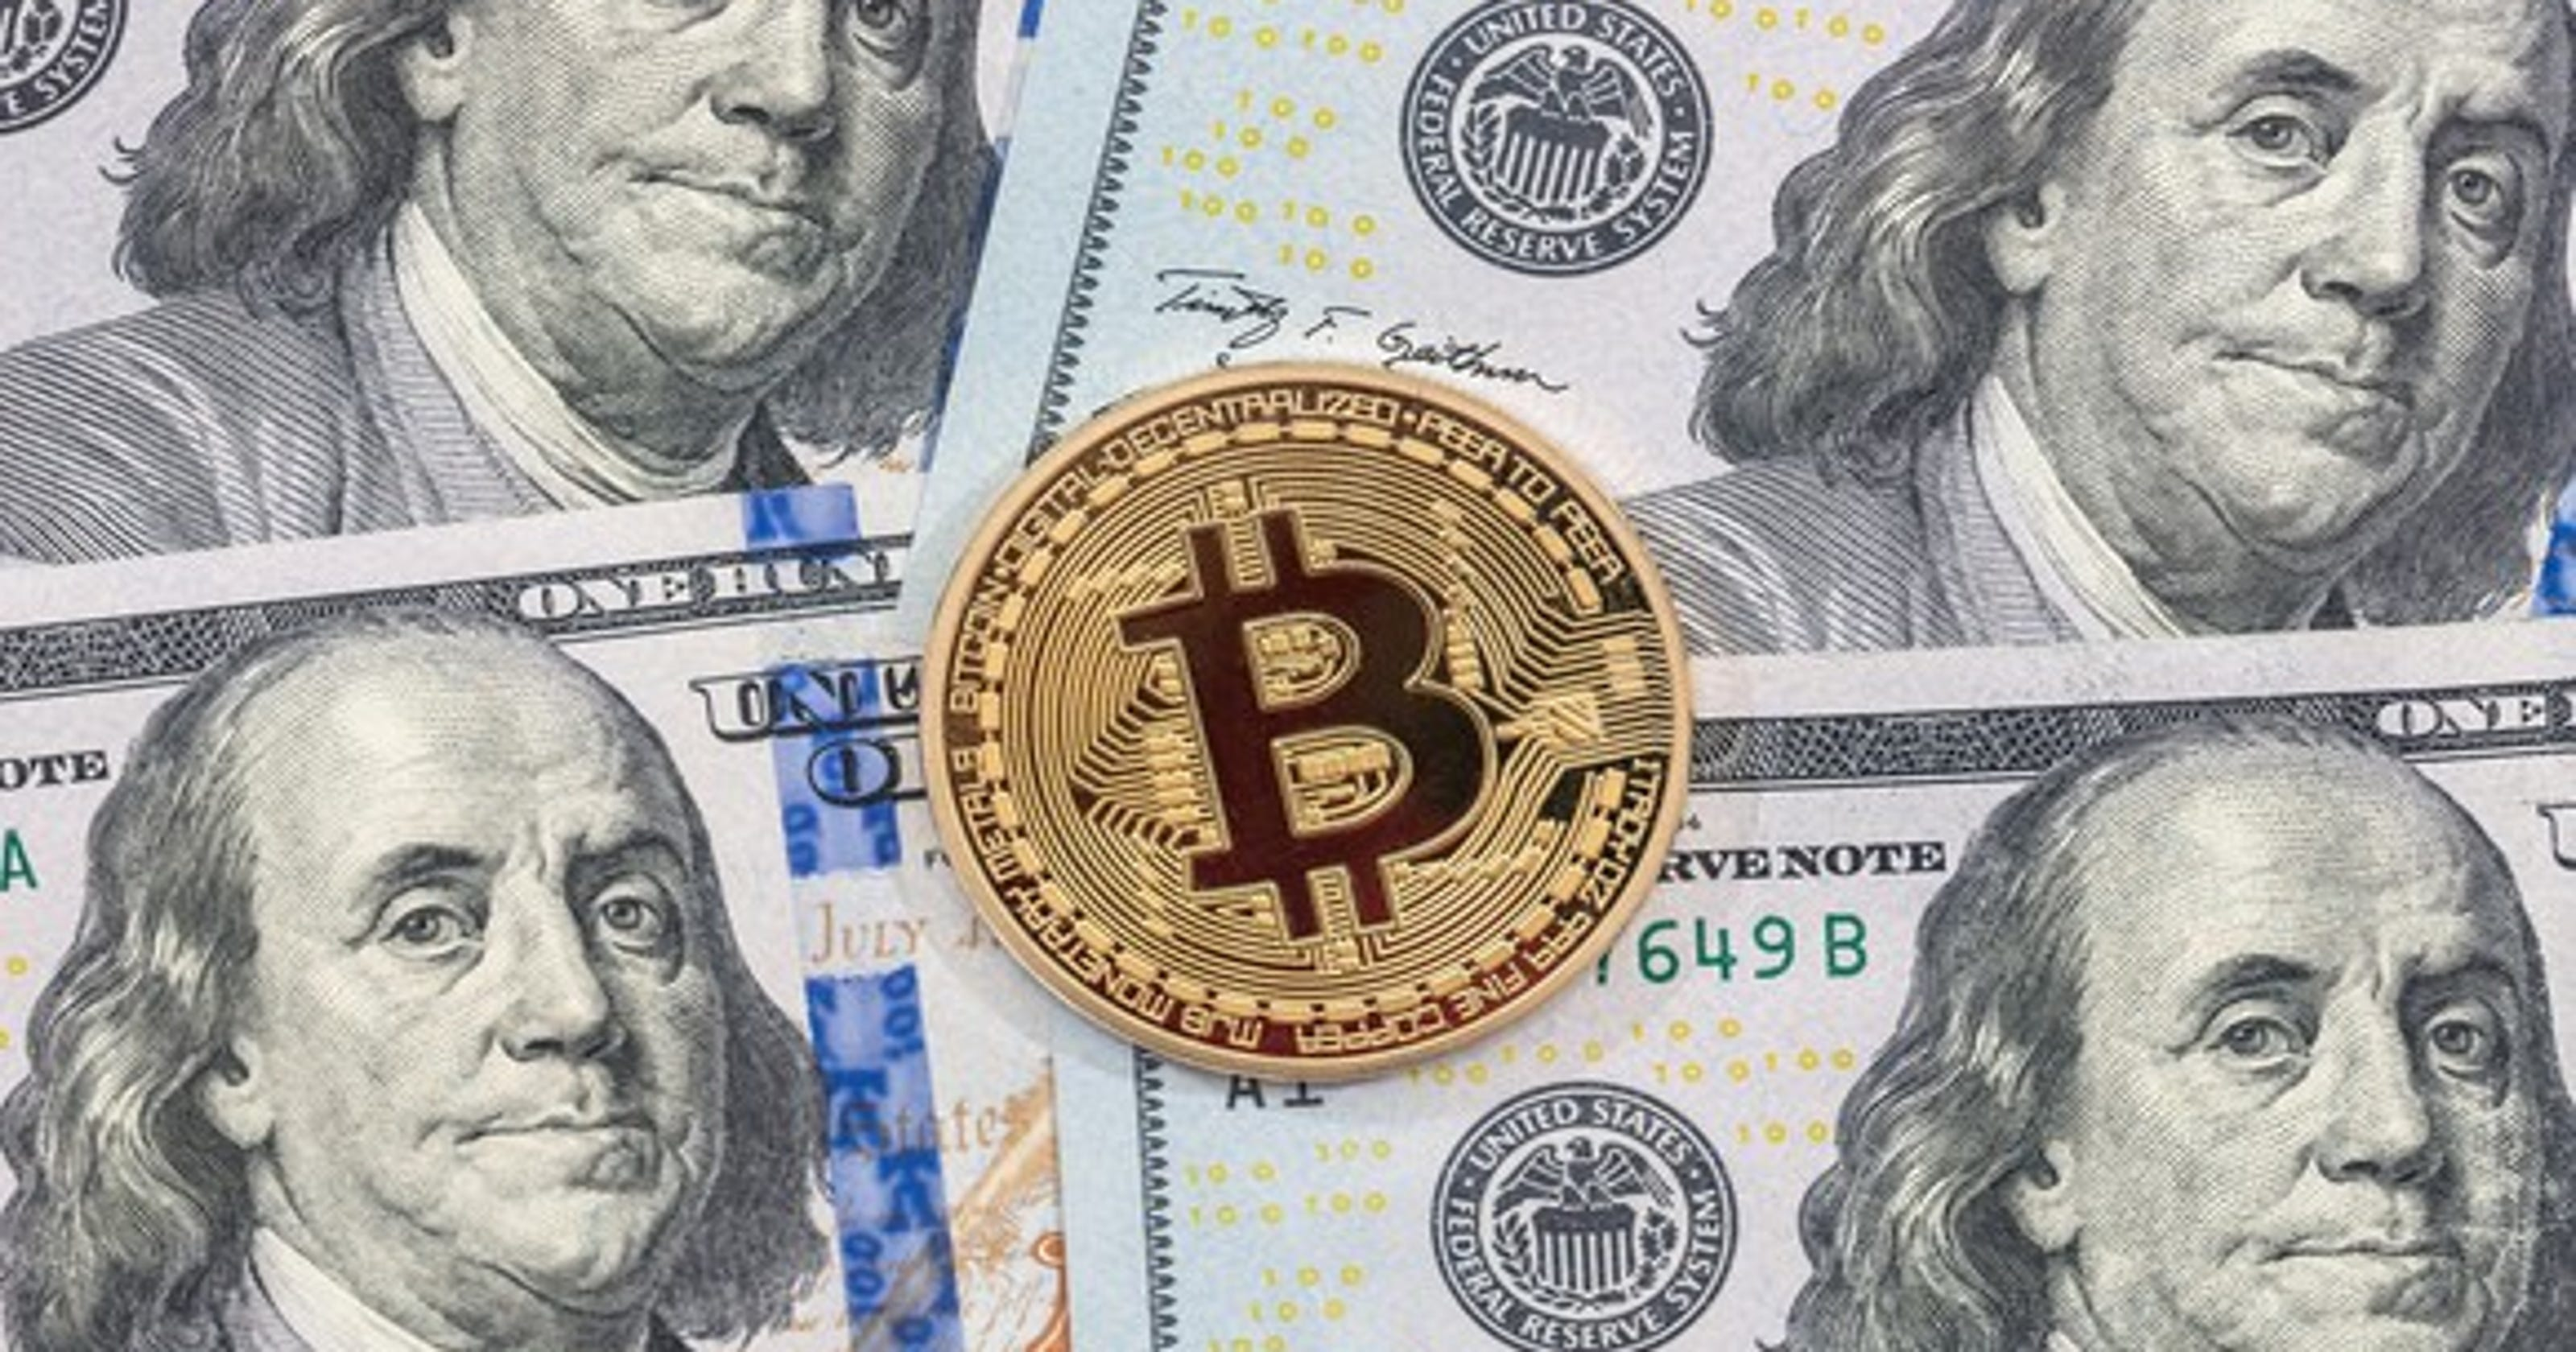 who invented bitcoin currency